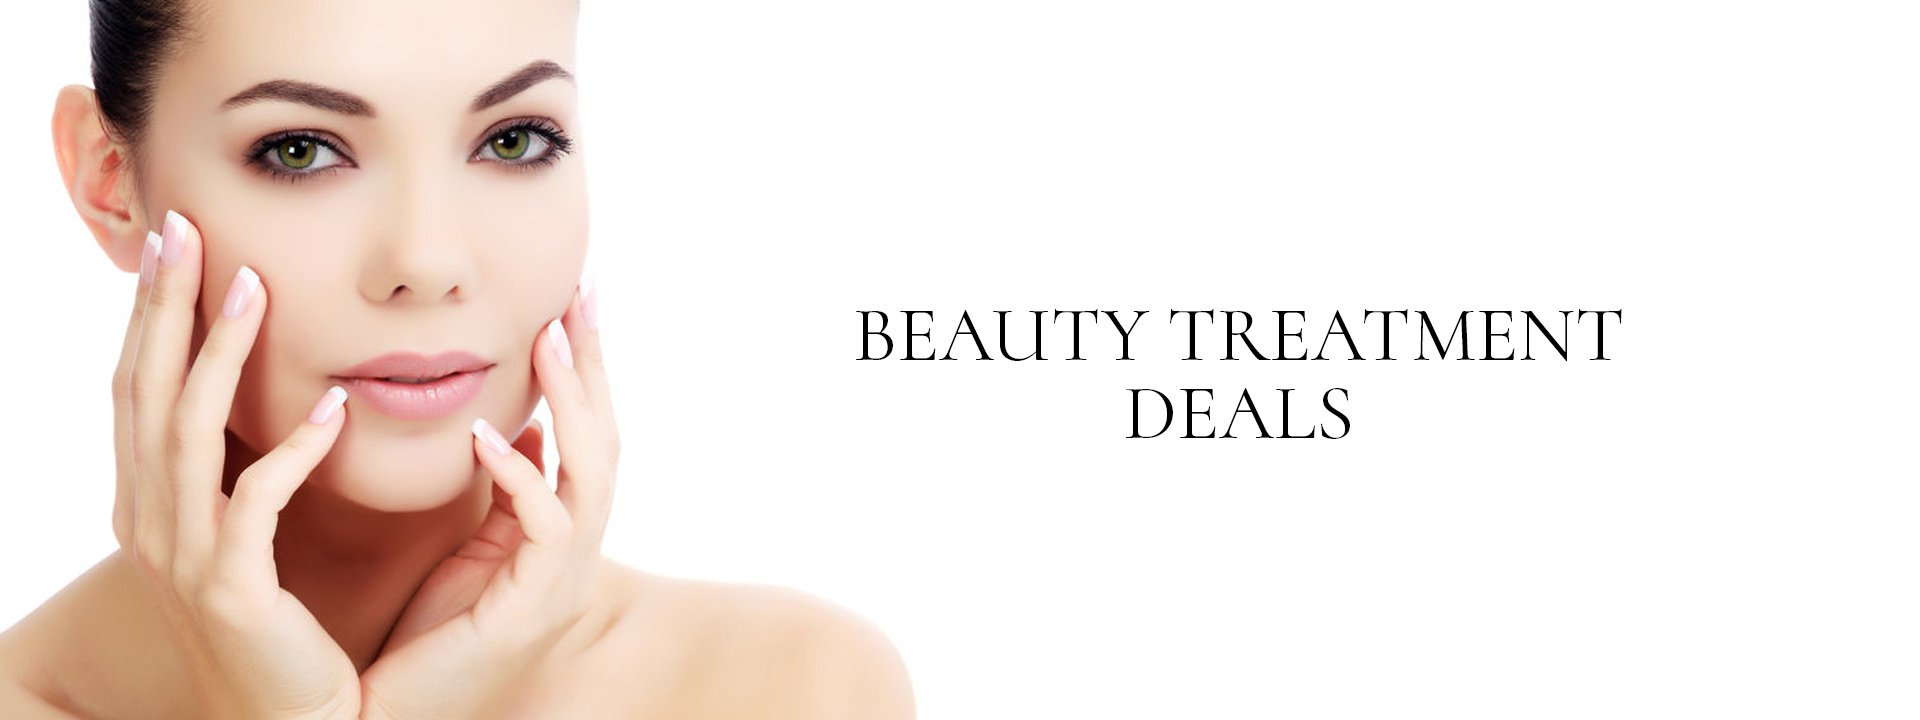 Beauty Treatment Offers Winchester Beauty Salon